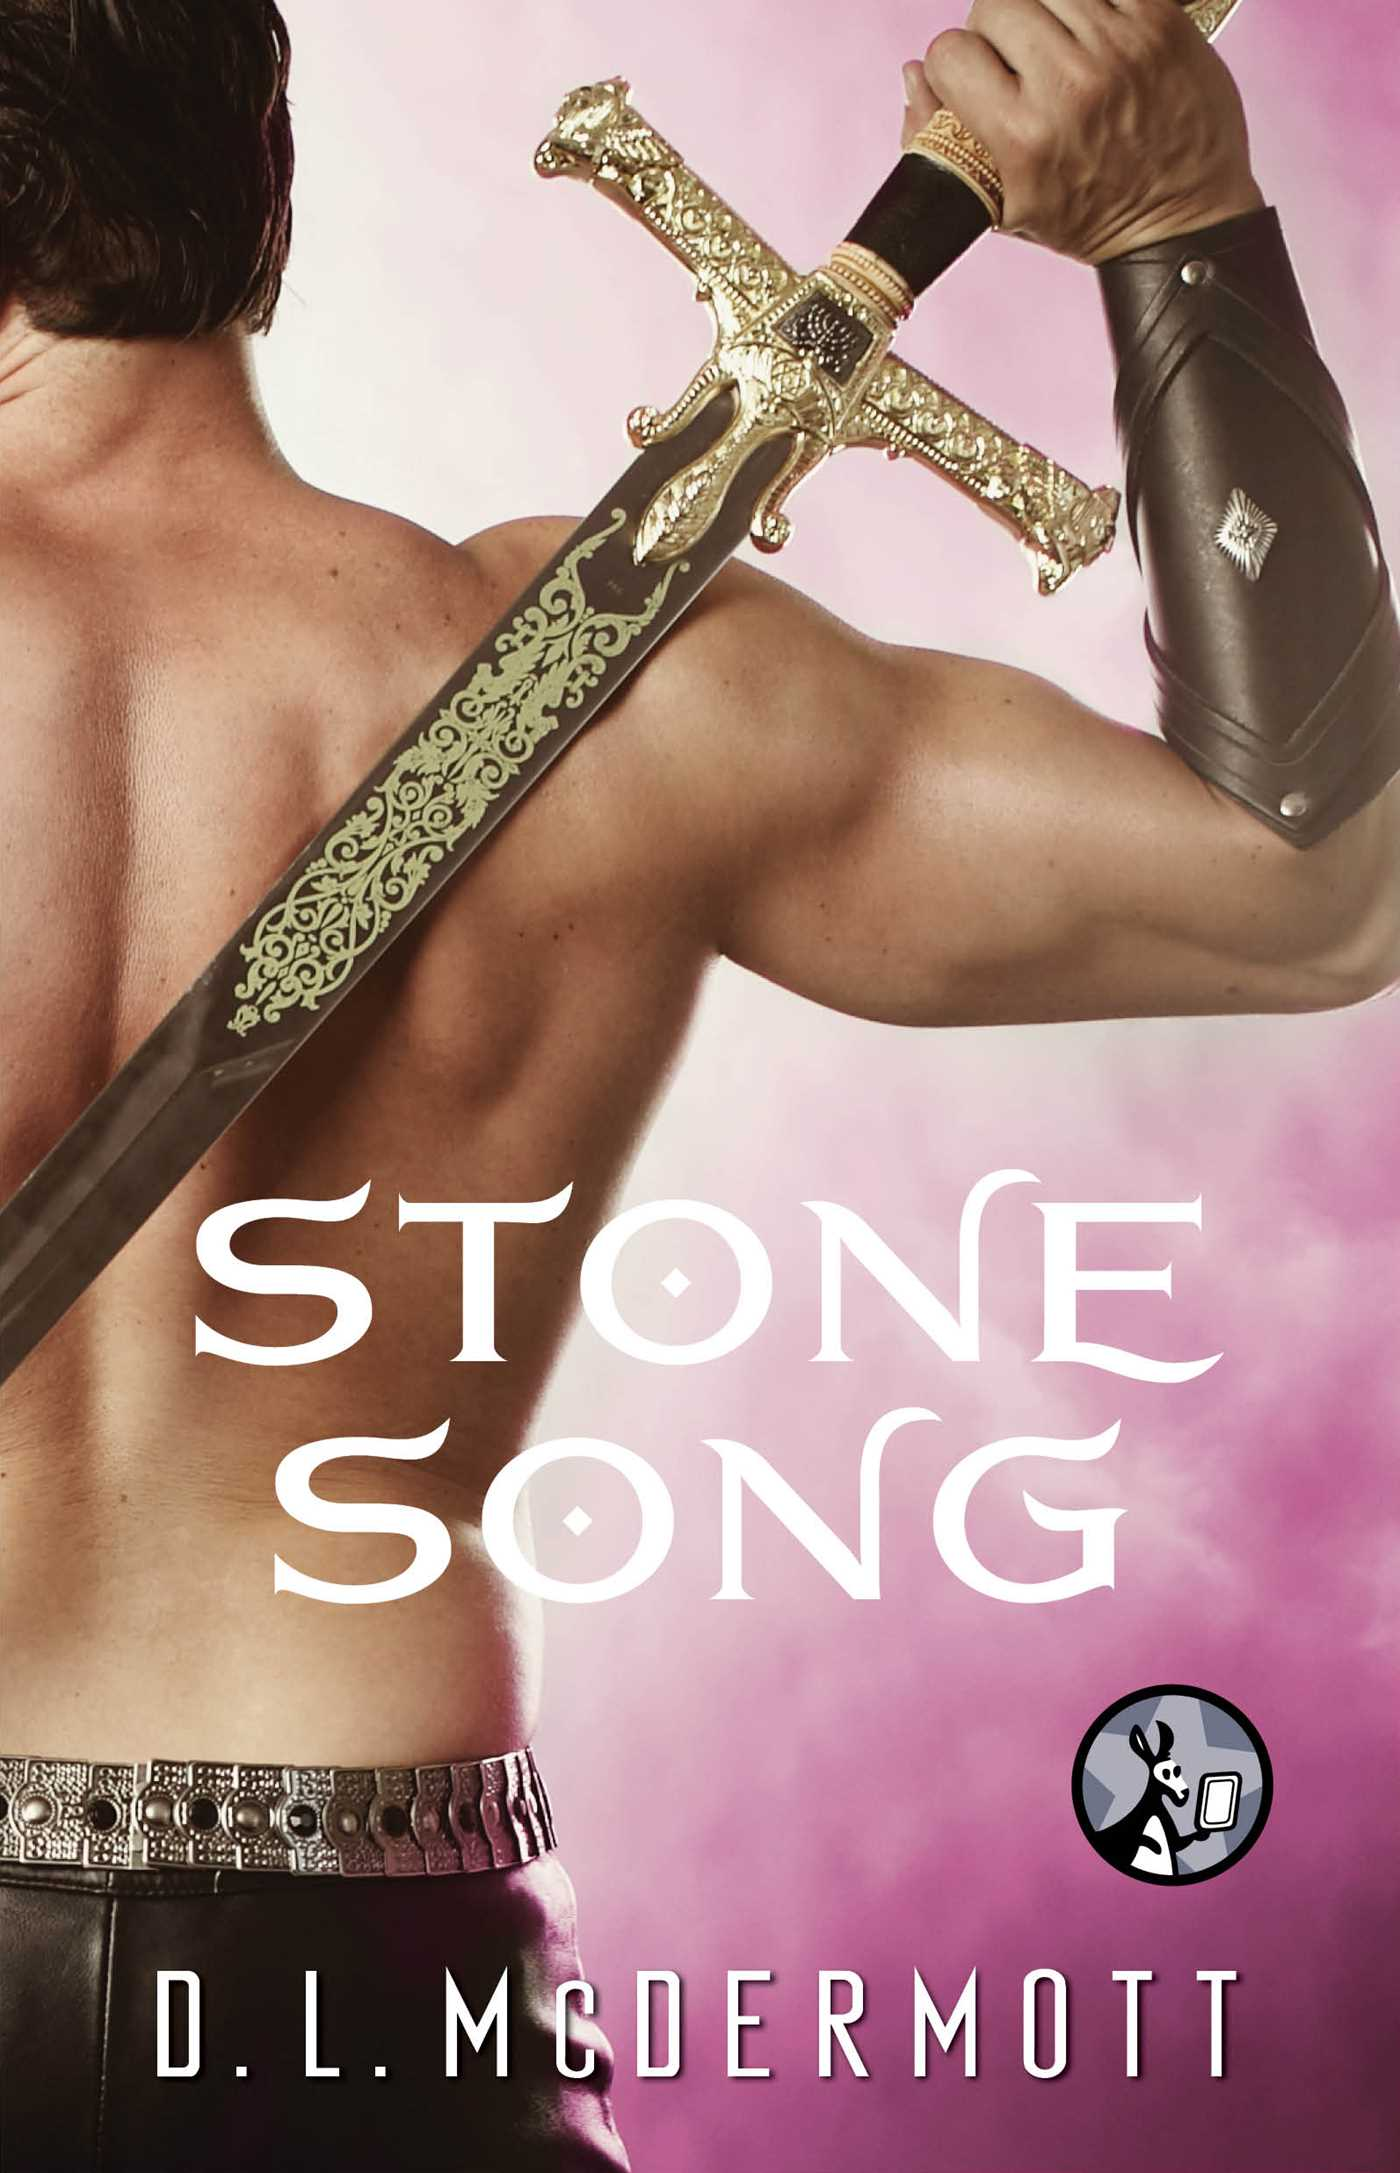 Stone-song-9781476734415_hr